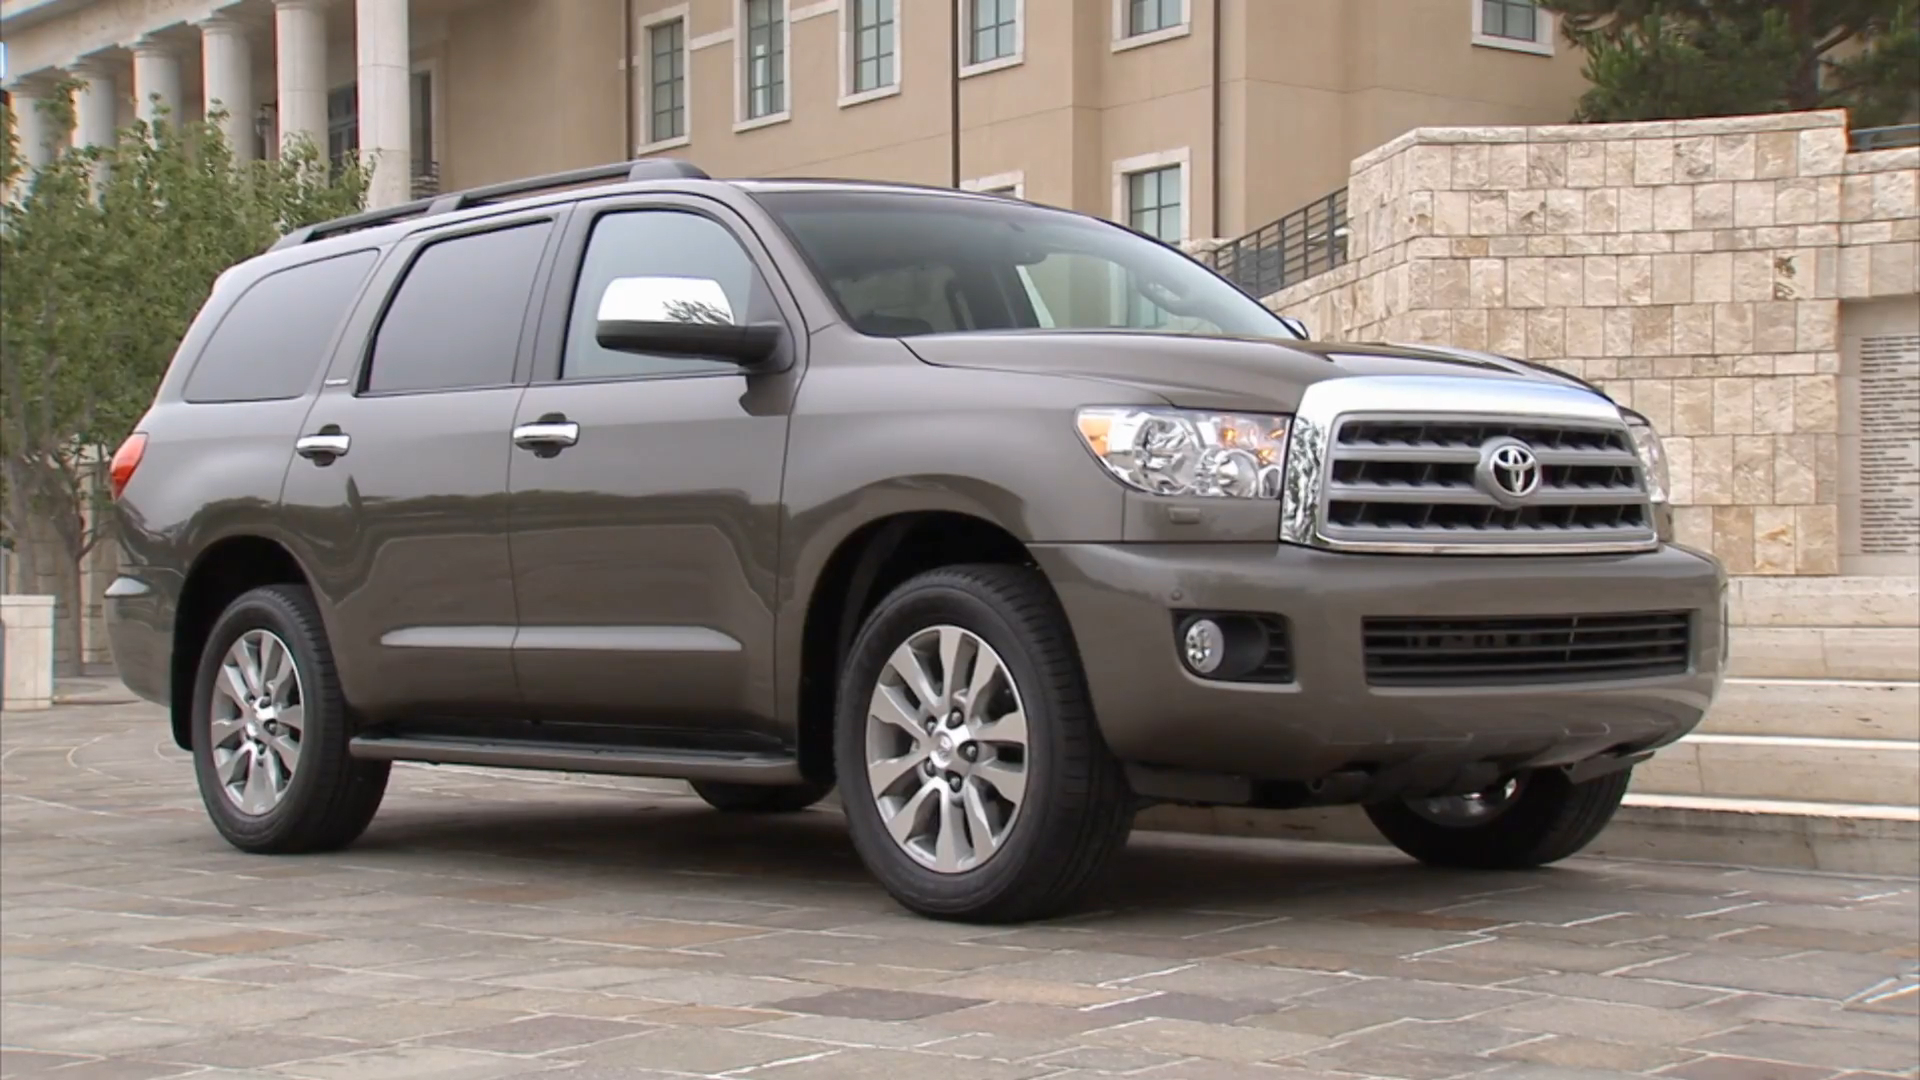 chevy tahoe vs ford expedition autos post. Black Bedroom Furniture Sets. Home Design Ideas